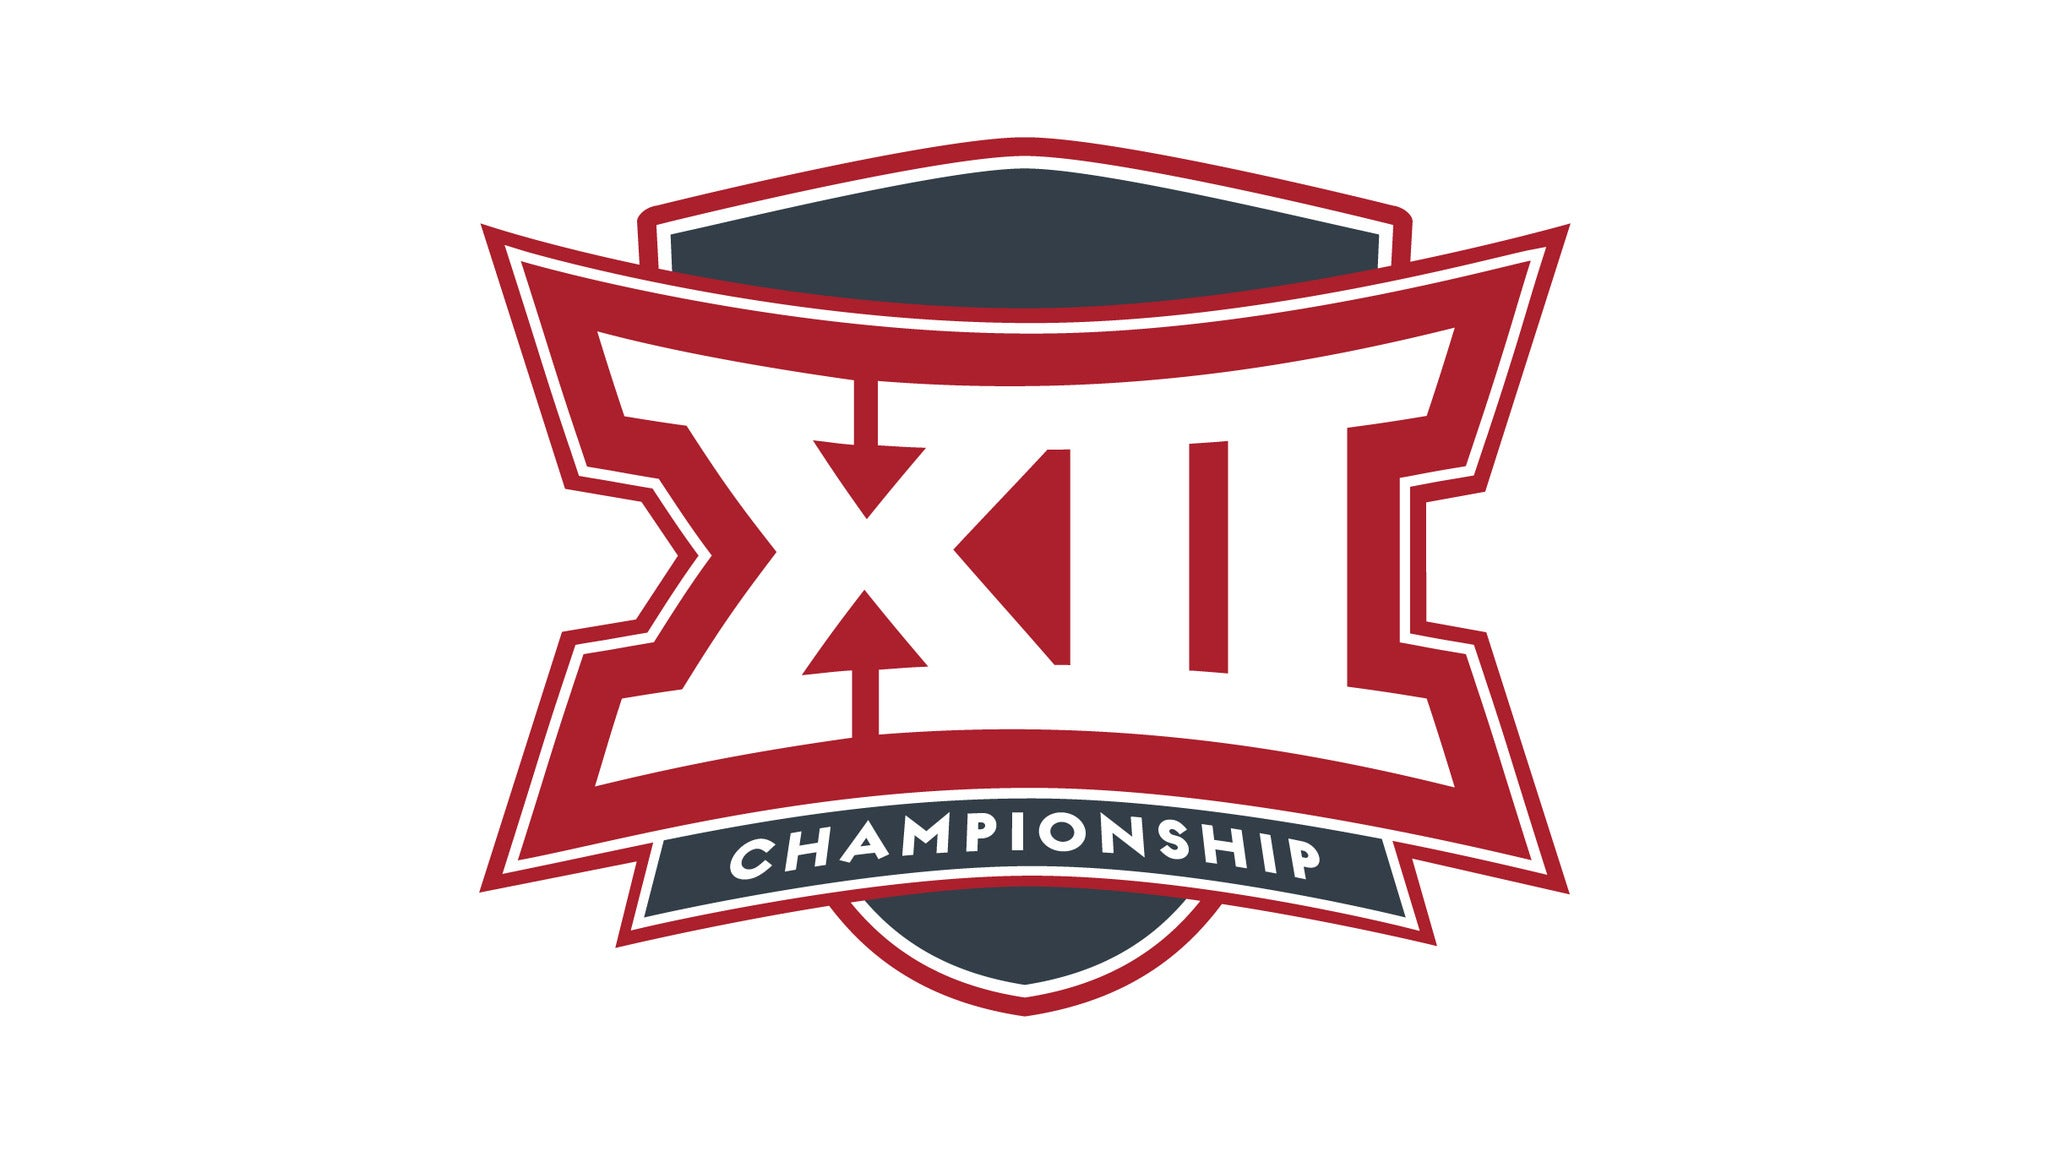 Big 12 Conference Football Championship at AT&T Stadium